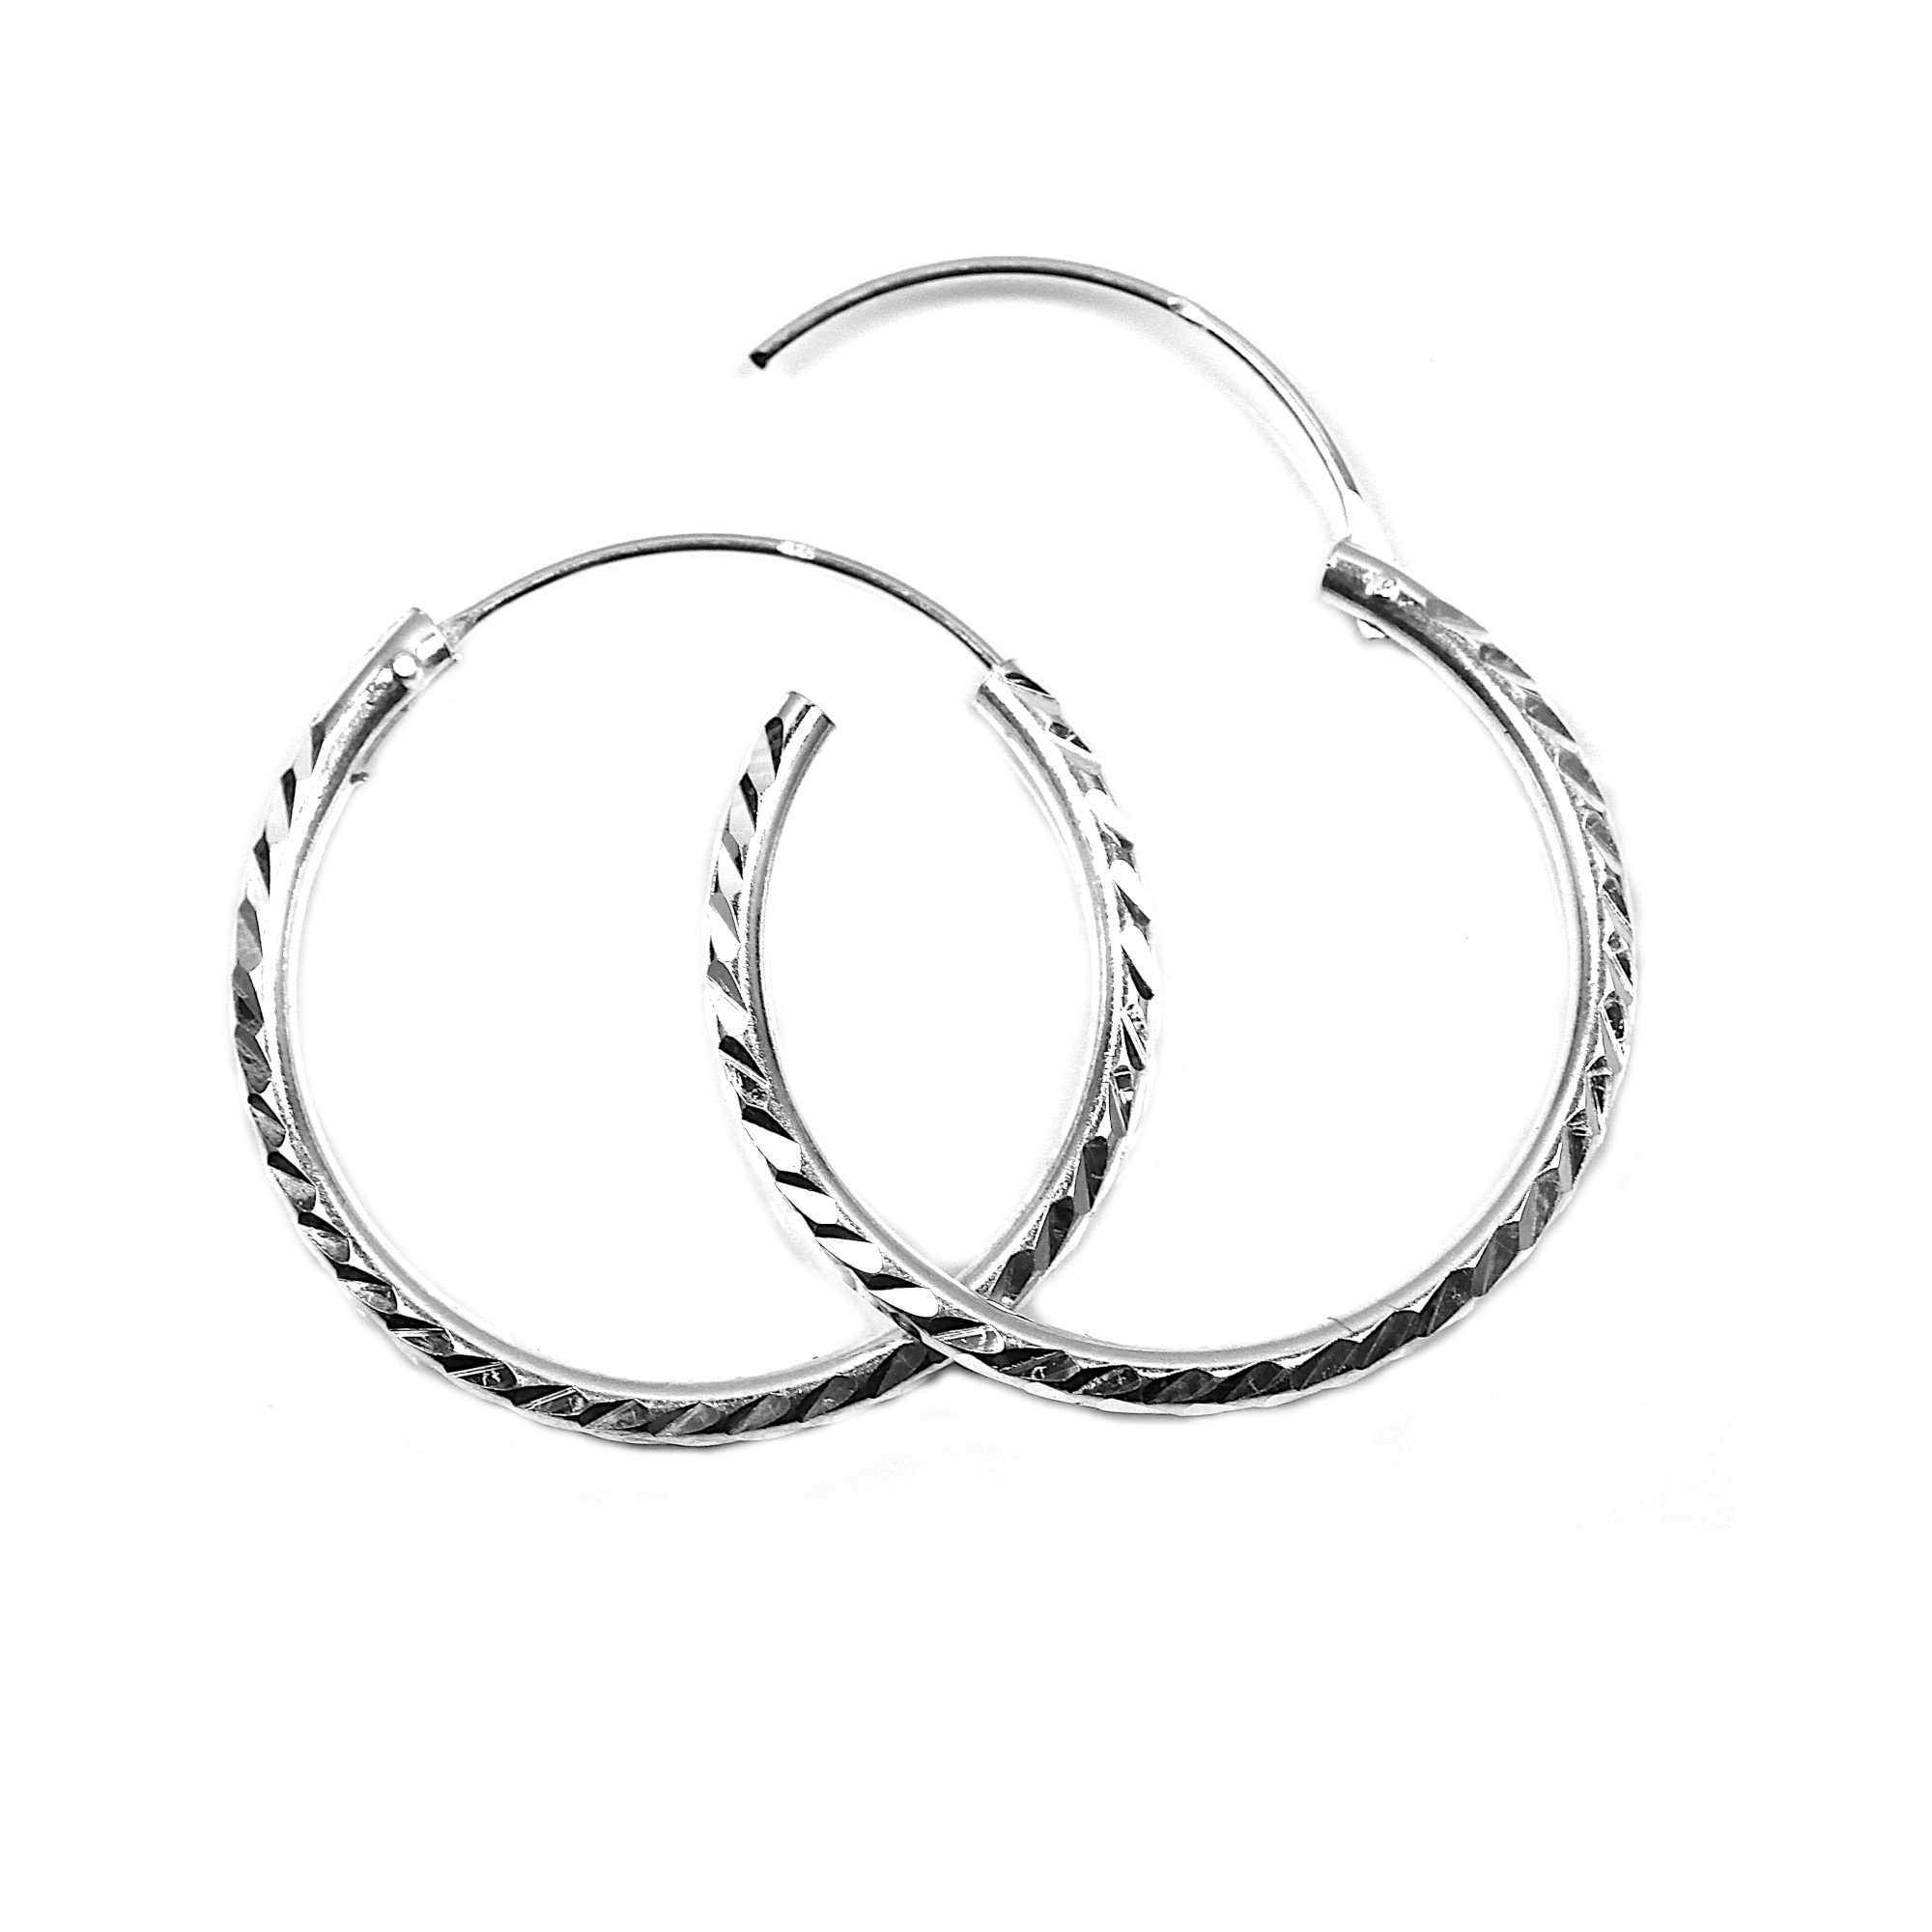 25mm silver hoop earrings diamond cut heavy weight